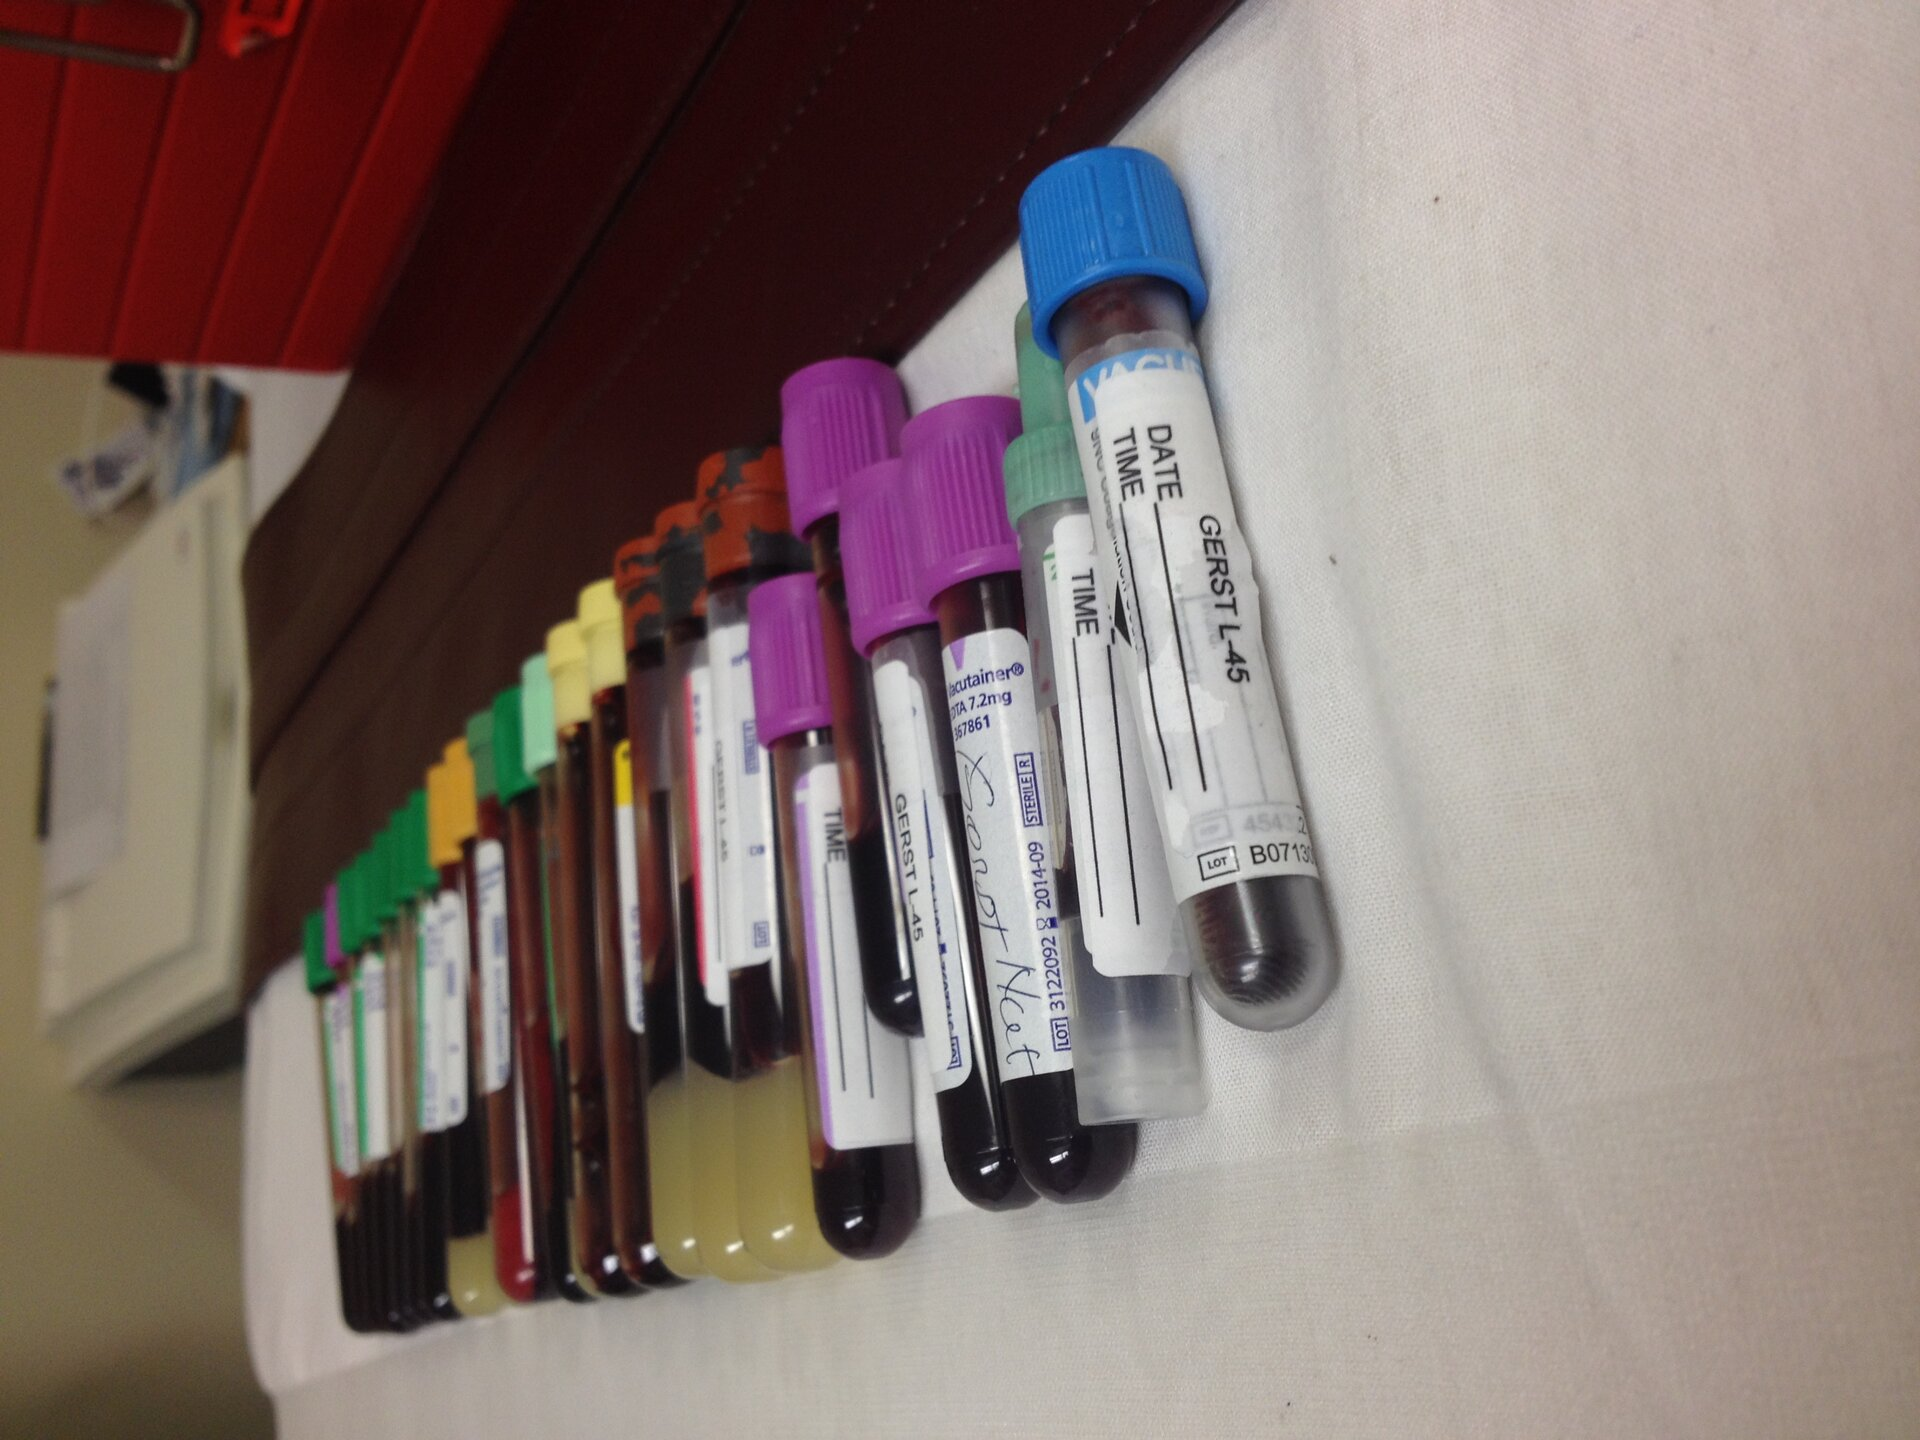 Alexander's blood samples